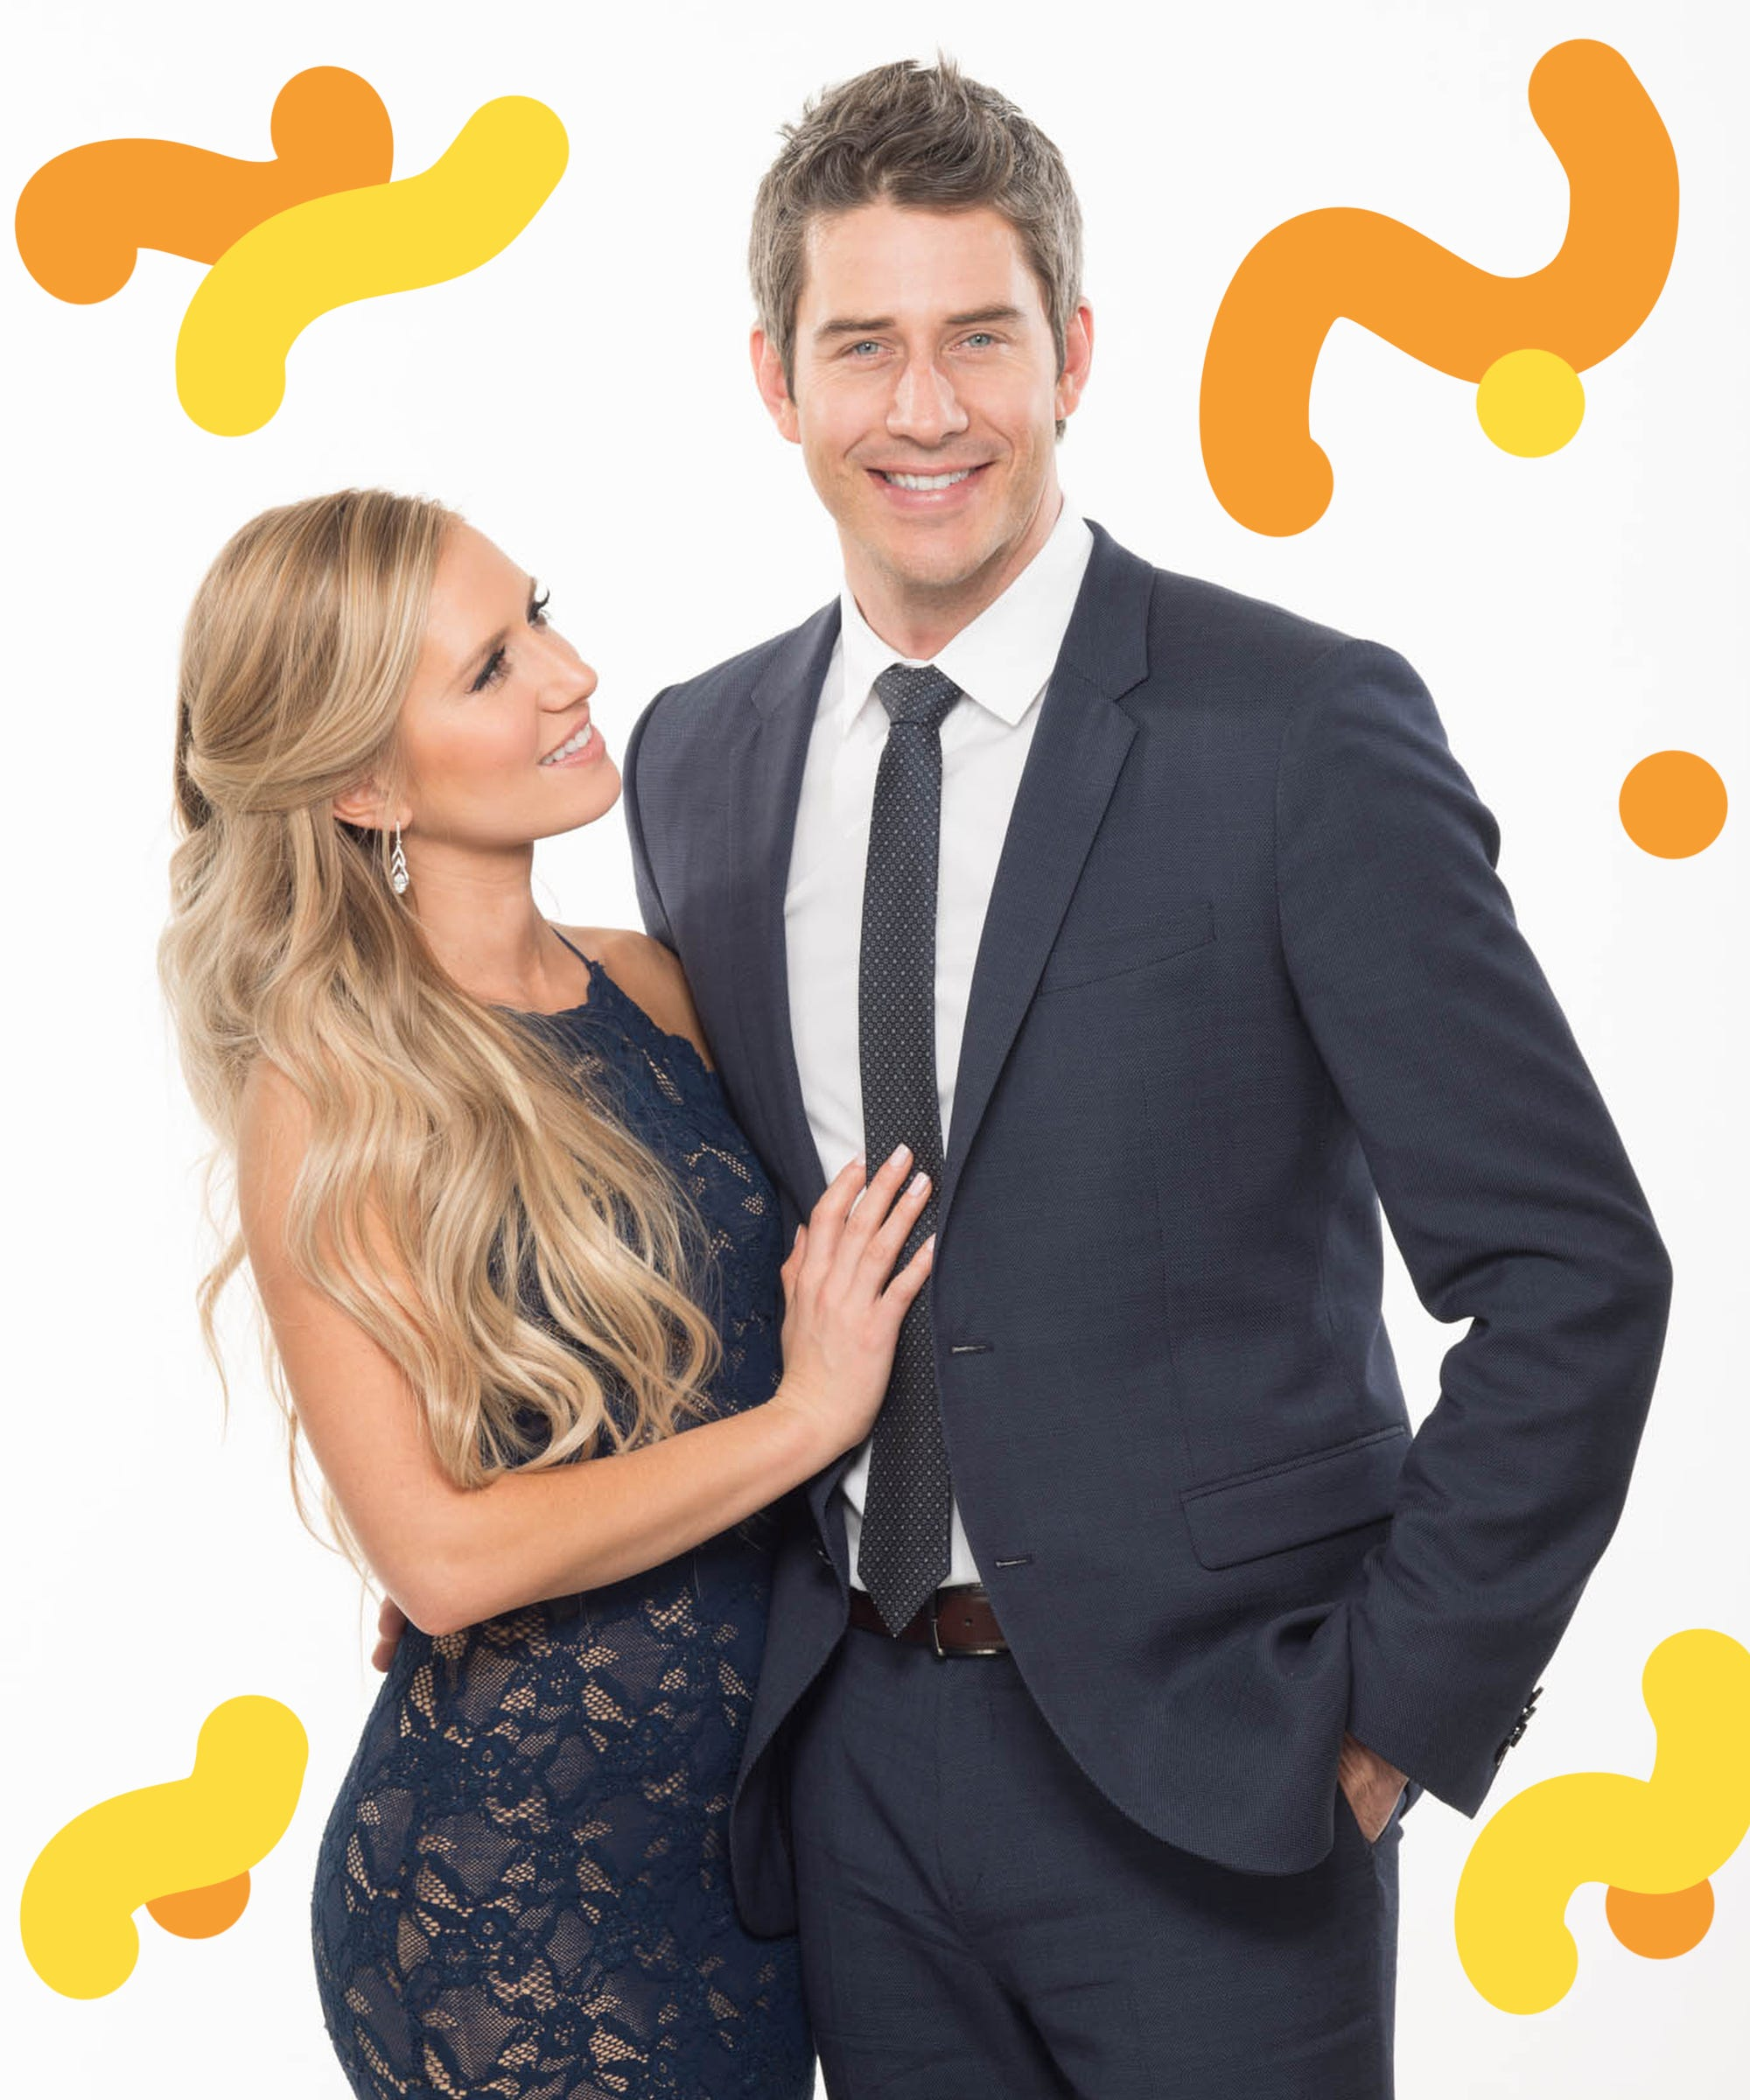 Who is brooks from the bachelor dating now